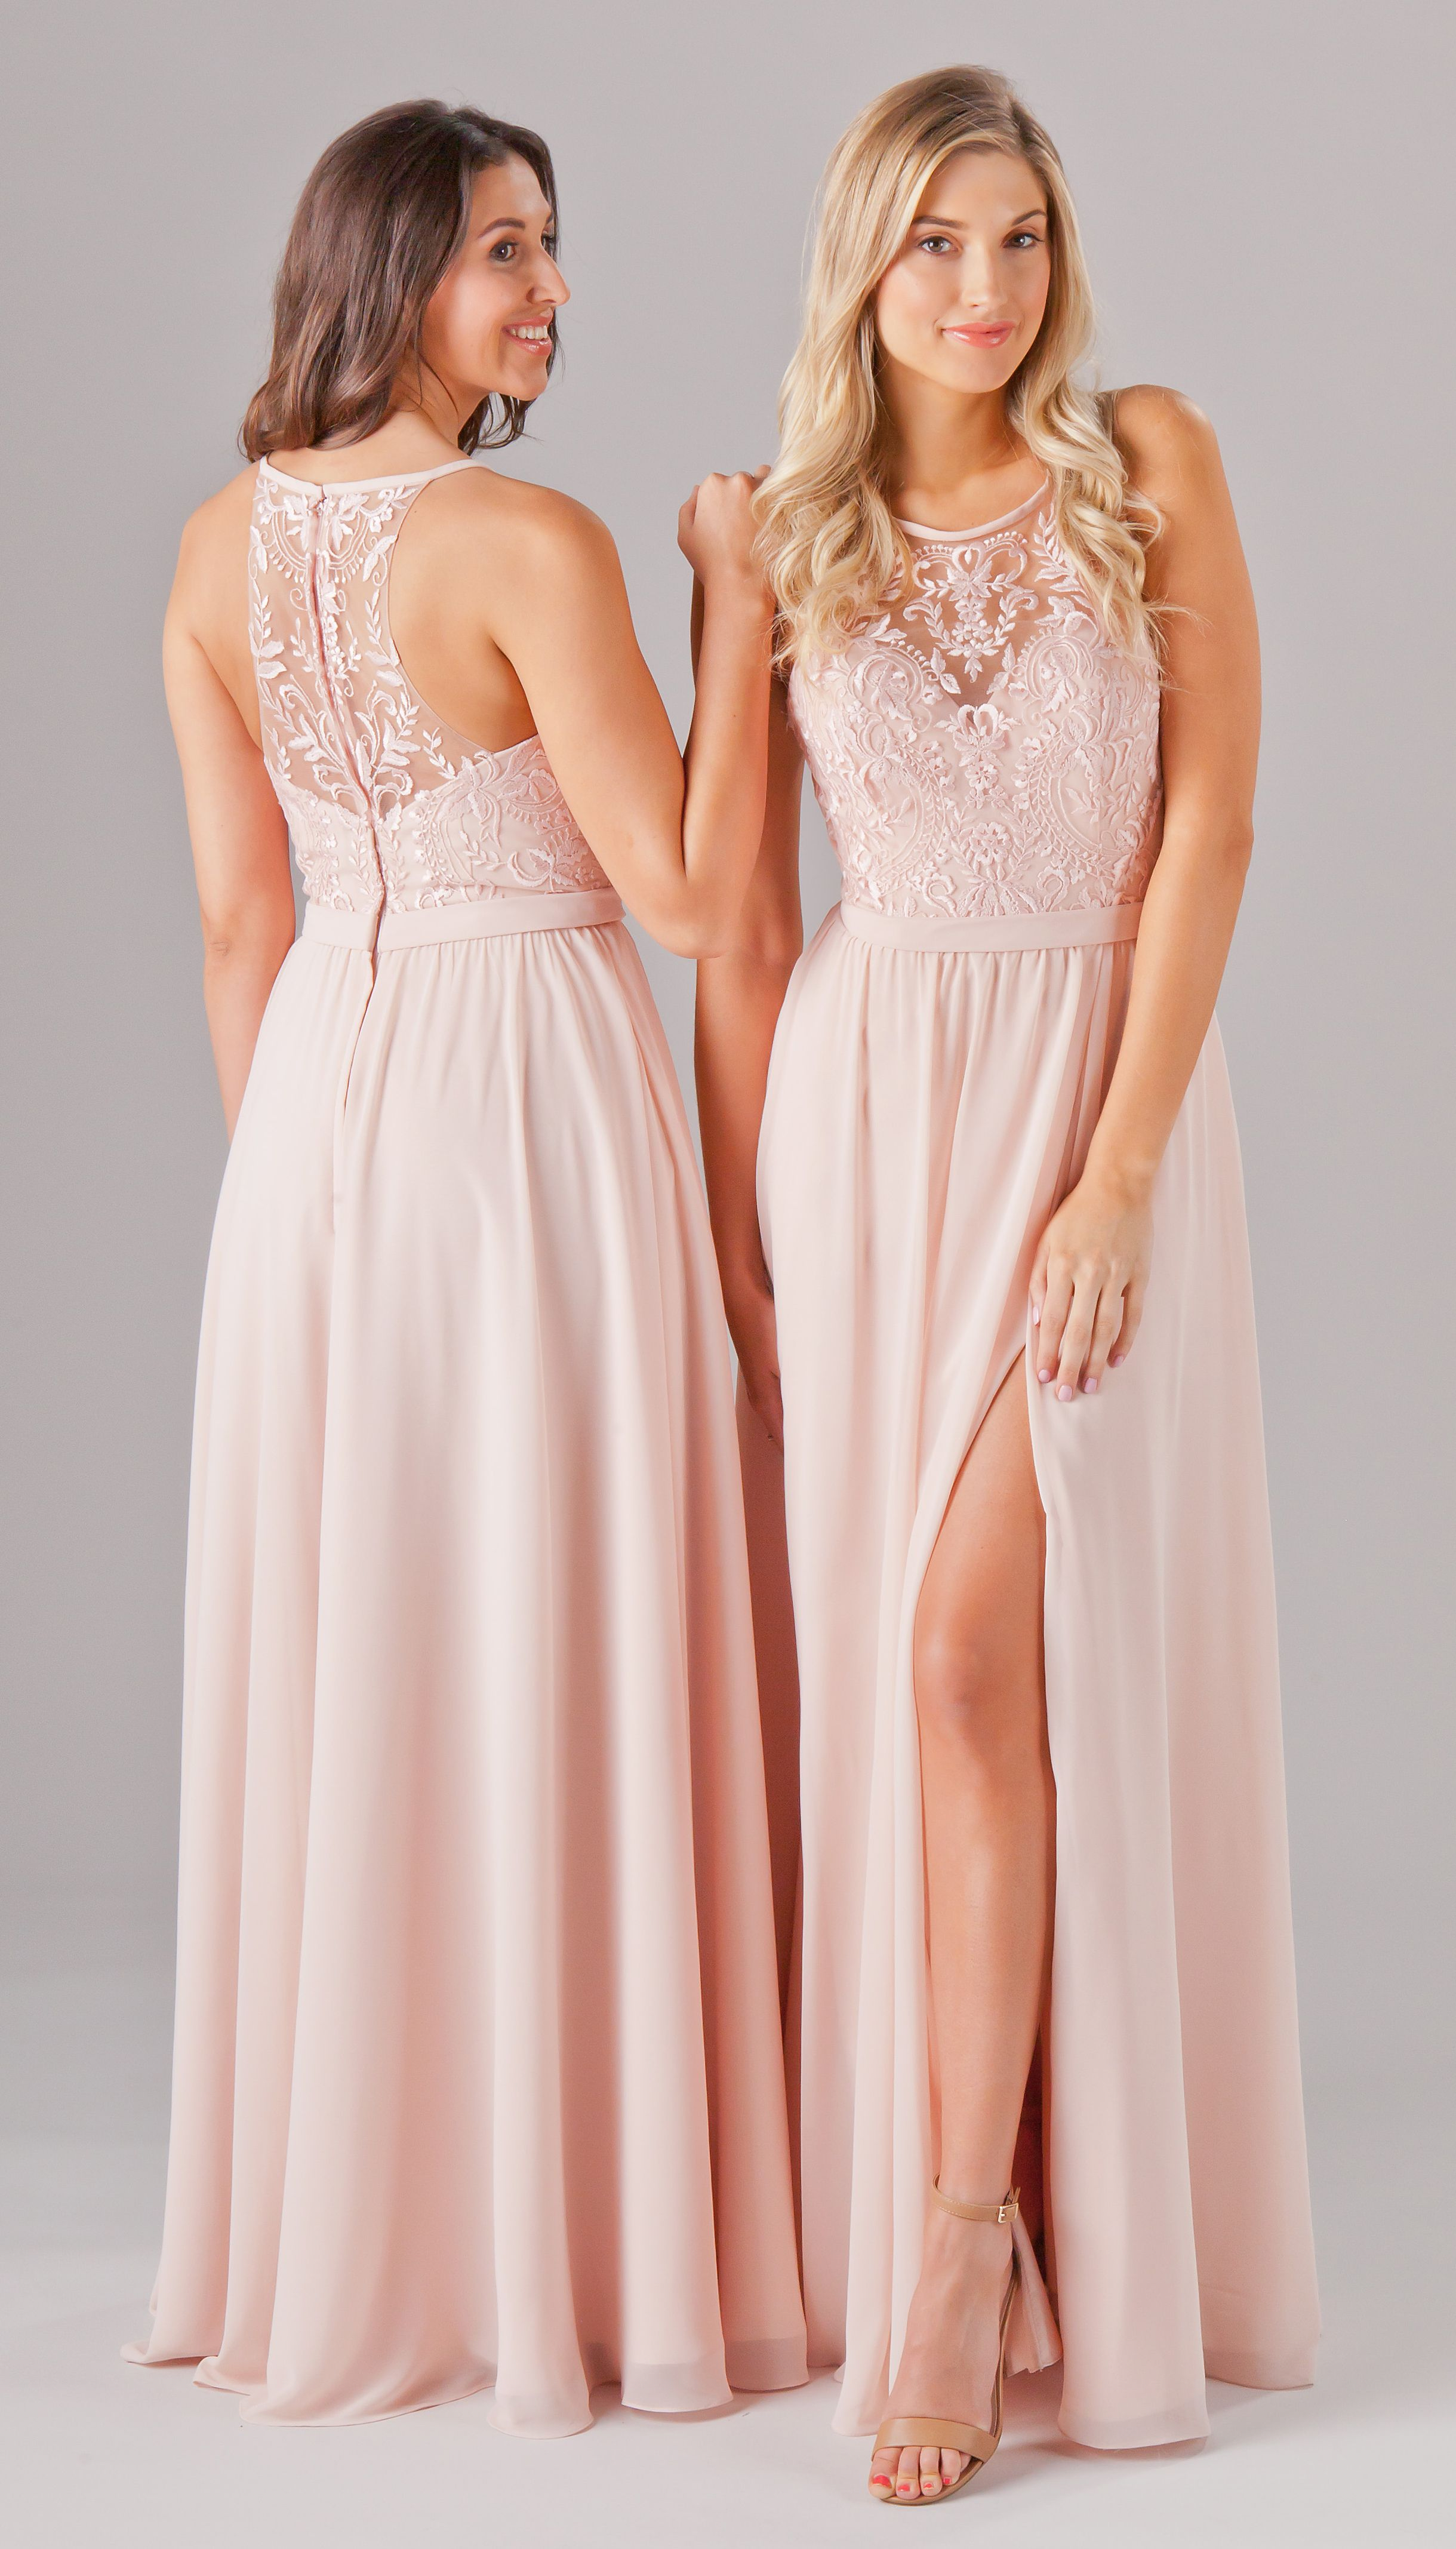 Embroidered Lace Bridesmaid Dresses Are Perfect For A Mix N Match Look Your Ma Lace Bridesmaid Dresses Blush Bridesmaid Dresses Long Blush Bridesmaid Dresses